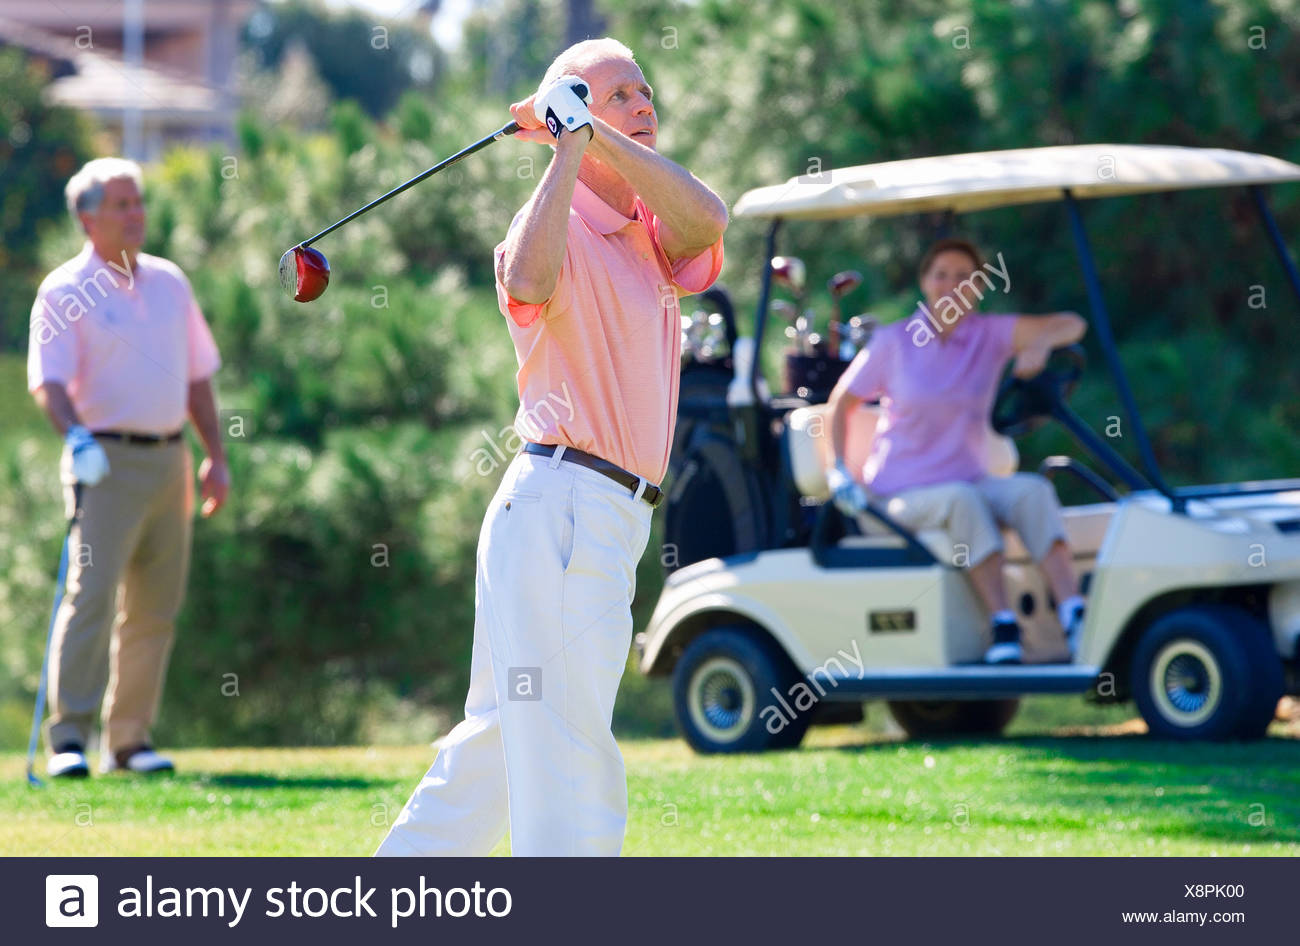 Three mature adults playing golf, mature man in polo shirt driving golf ball from tee, mature couple watching from golf buggy - Stock Image